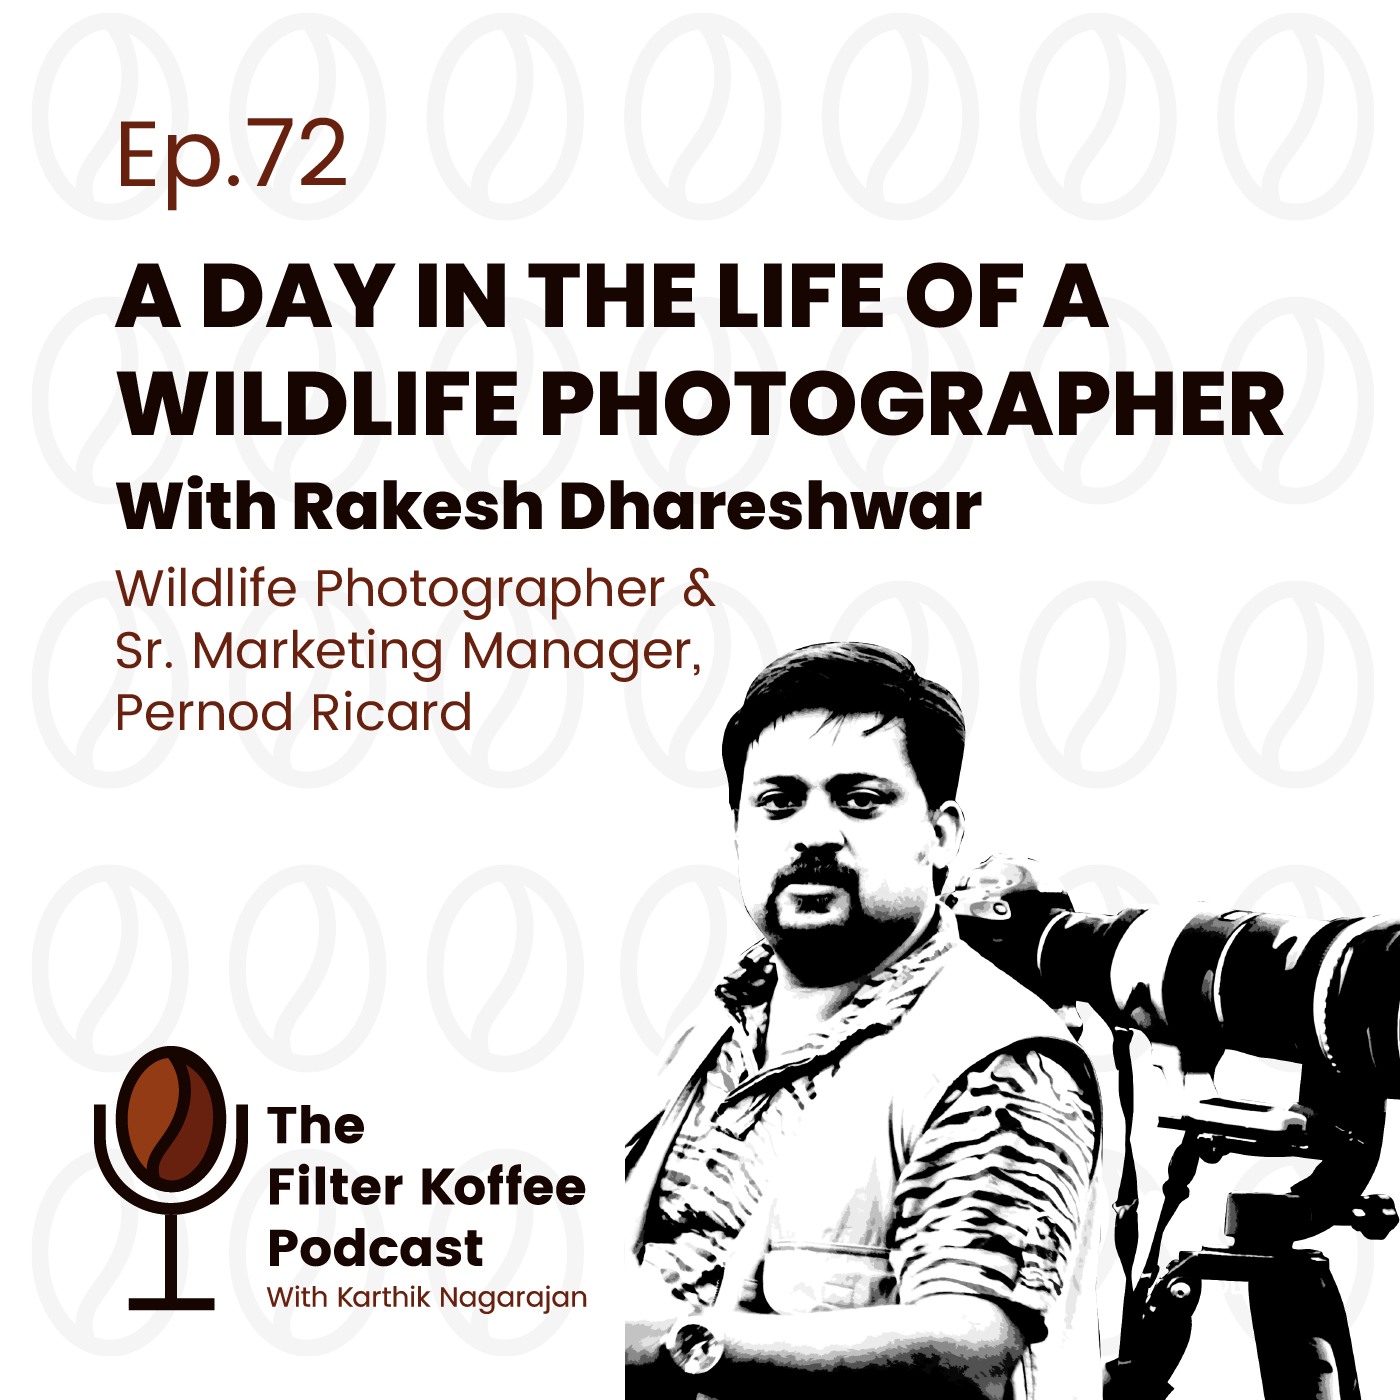 Ep. 72: A Day in The Life of a Wildlife Photographer'